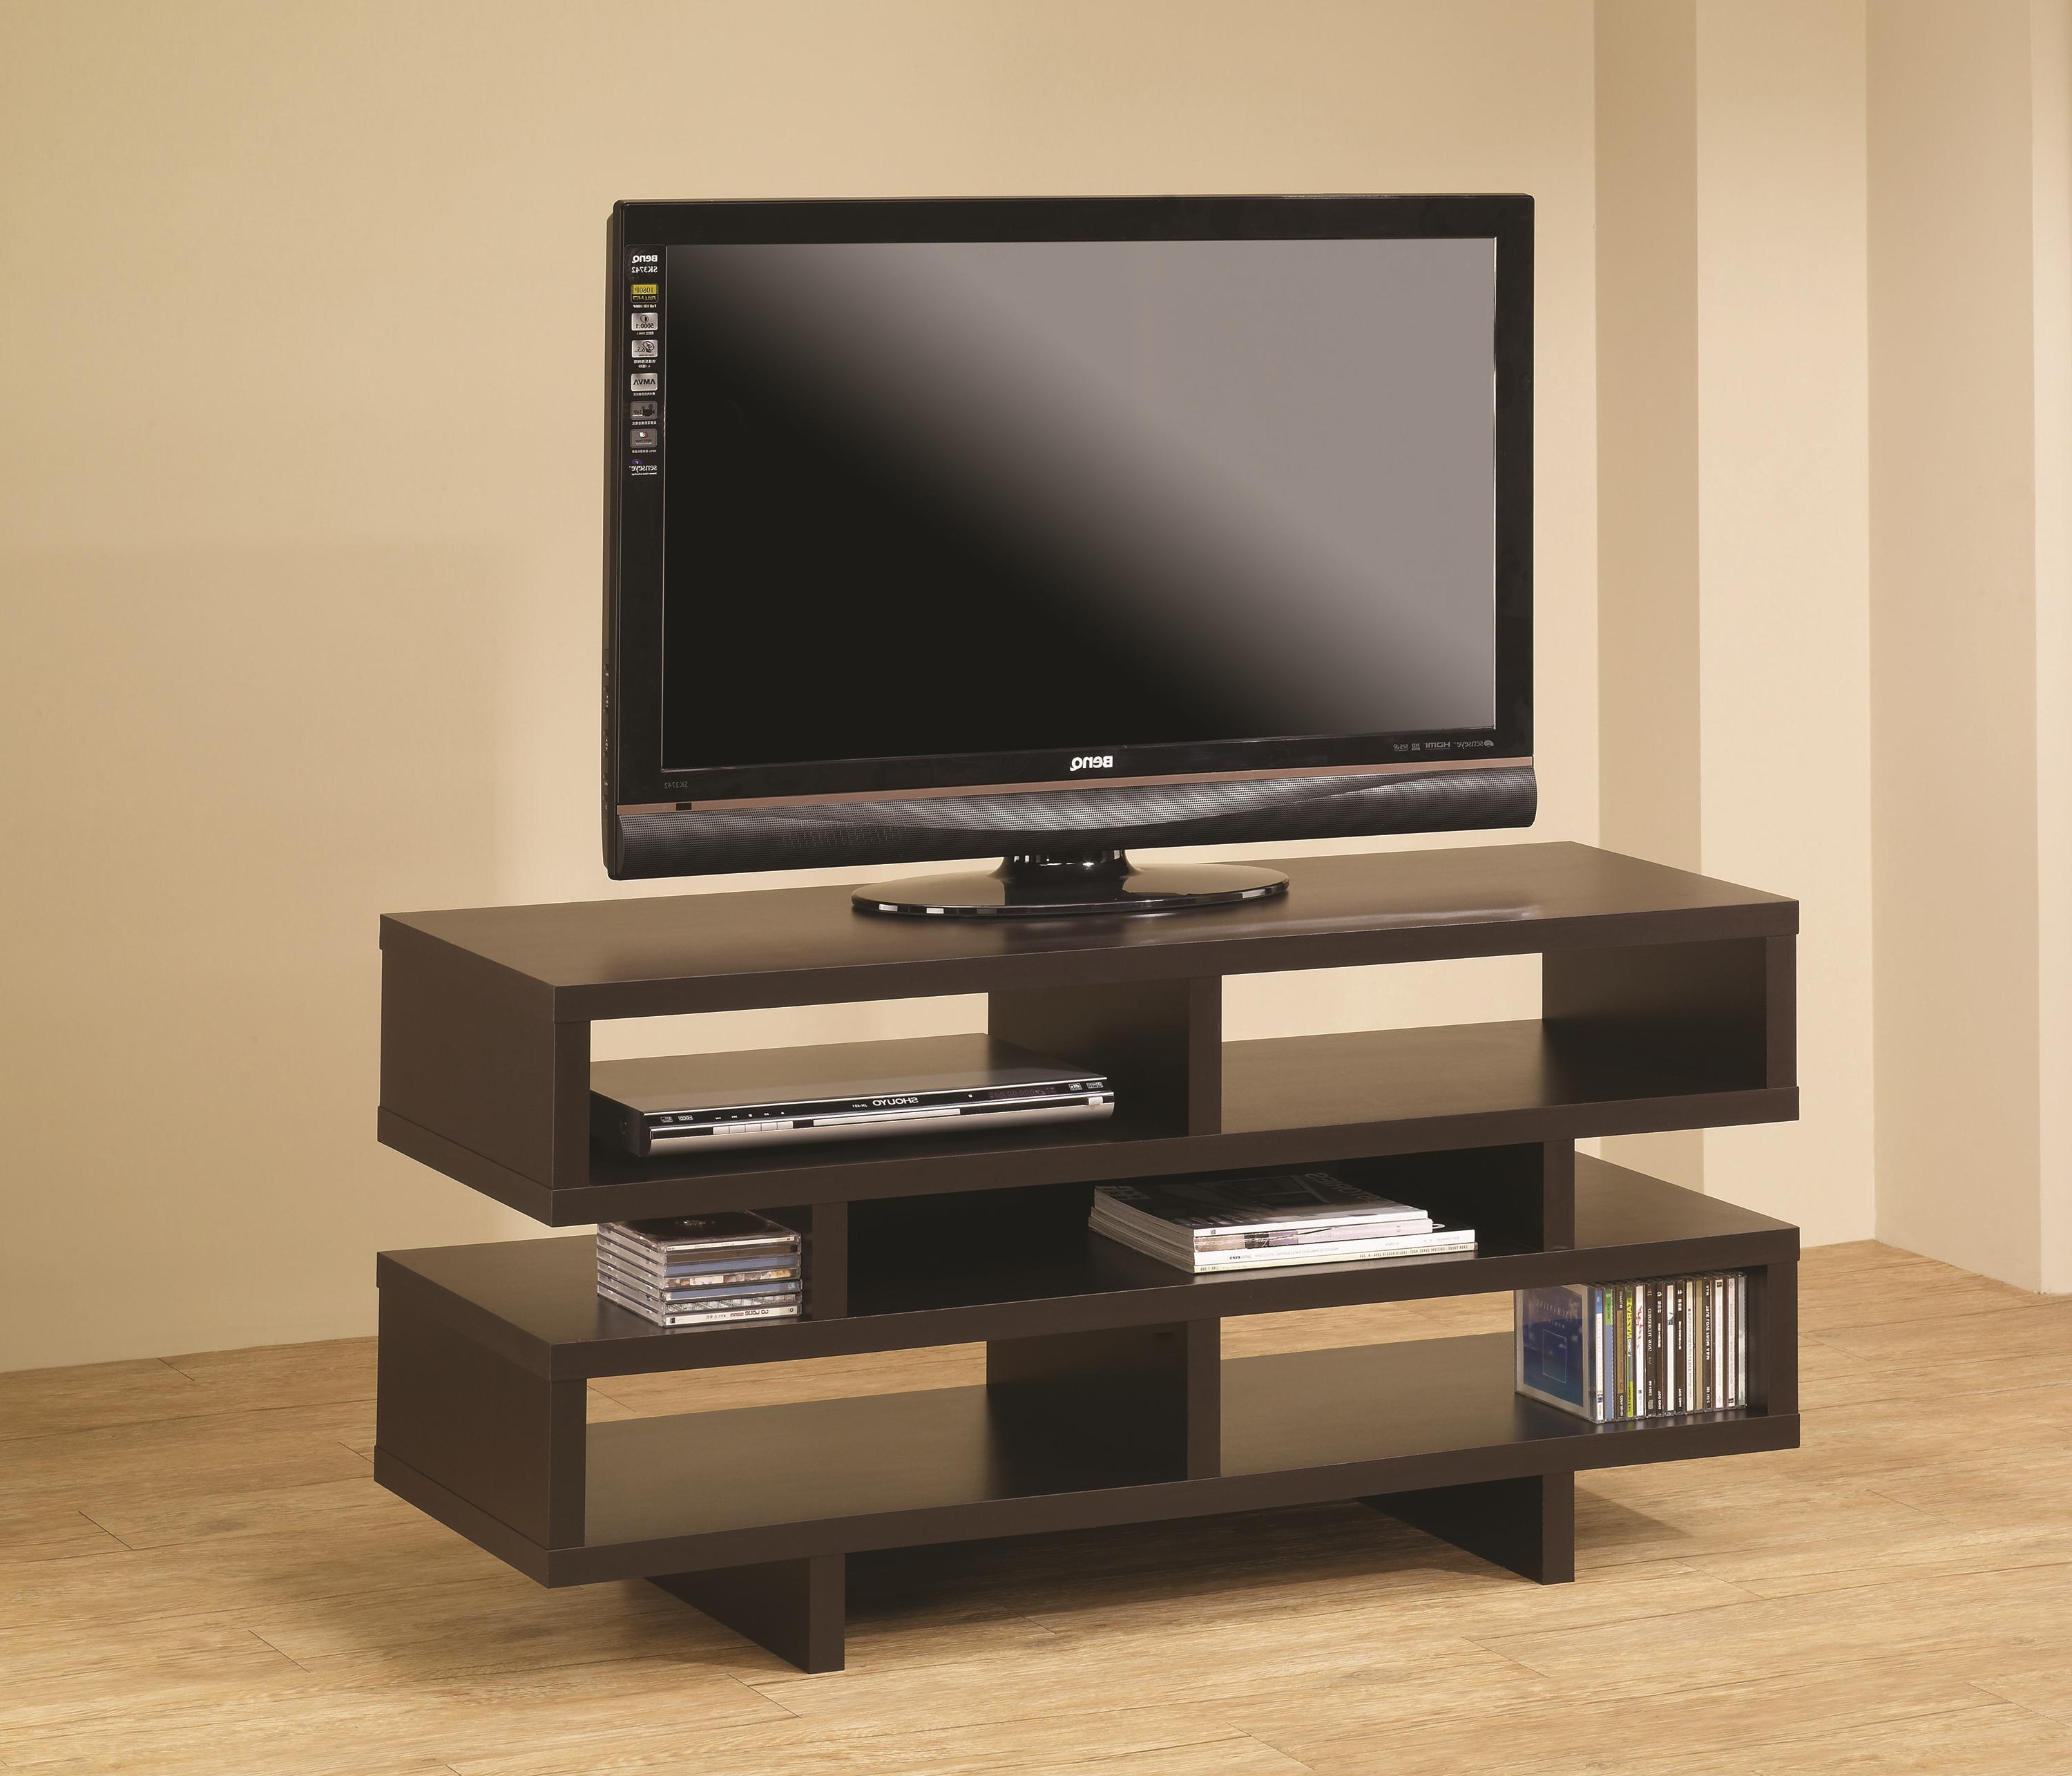 Recent Coaster Tv Stands 700720 Contemporary Tv Console With Open Storage For Cheap Tv Table Stands (View 18 of 20)